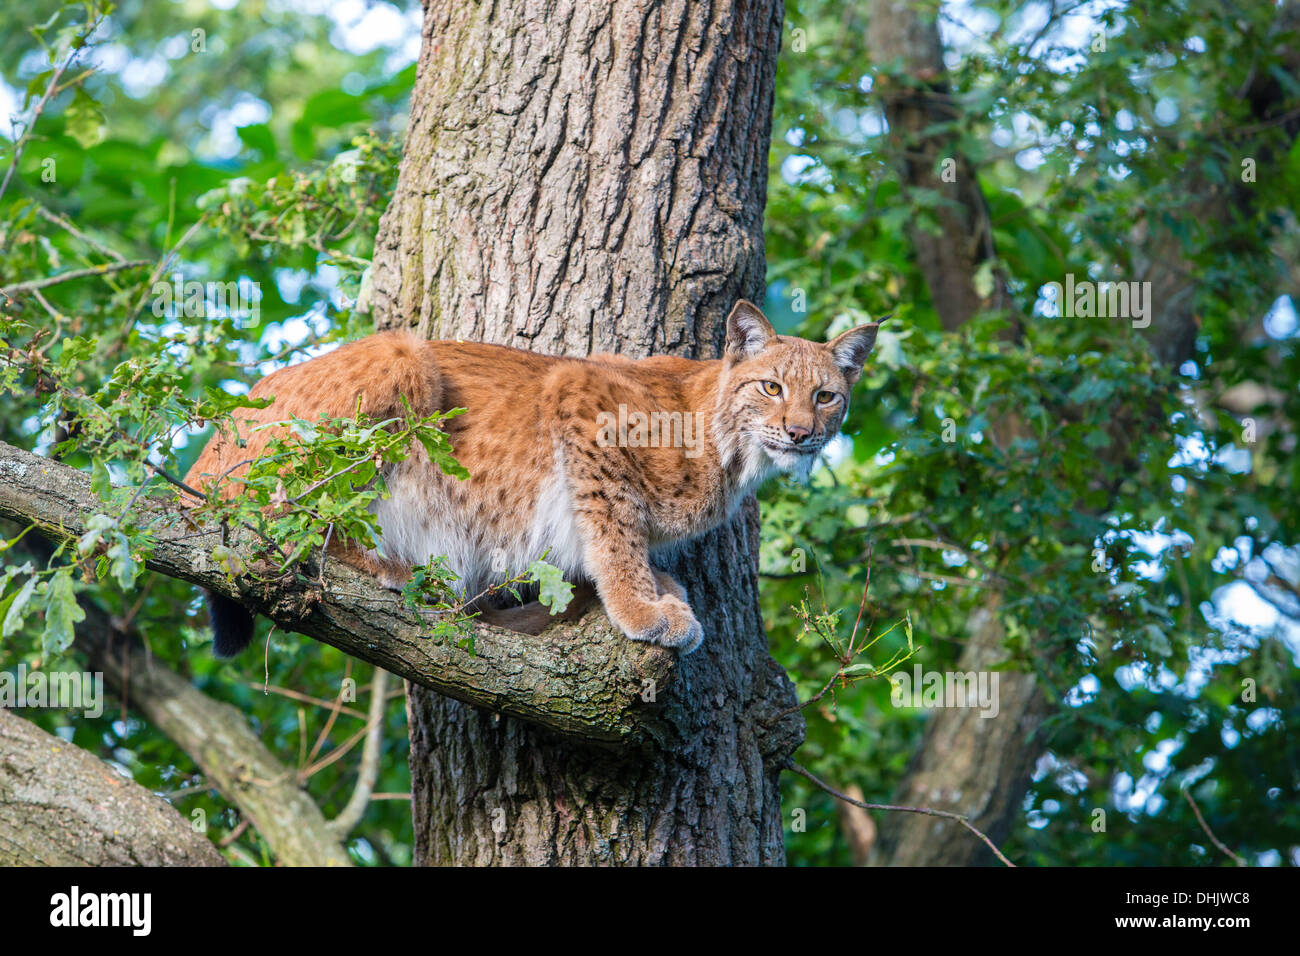 Lynx on a tree, Skalen zoo, Stockholm, Sweden, Europe - Stock Image